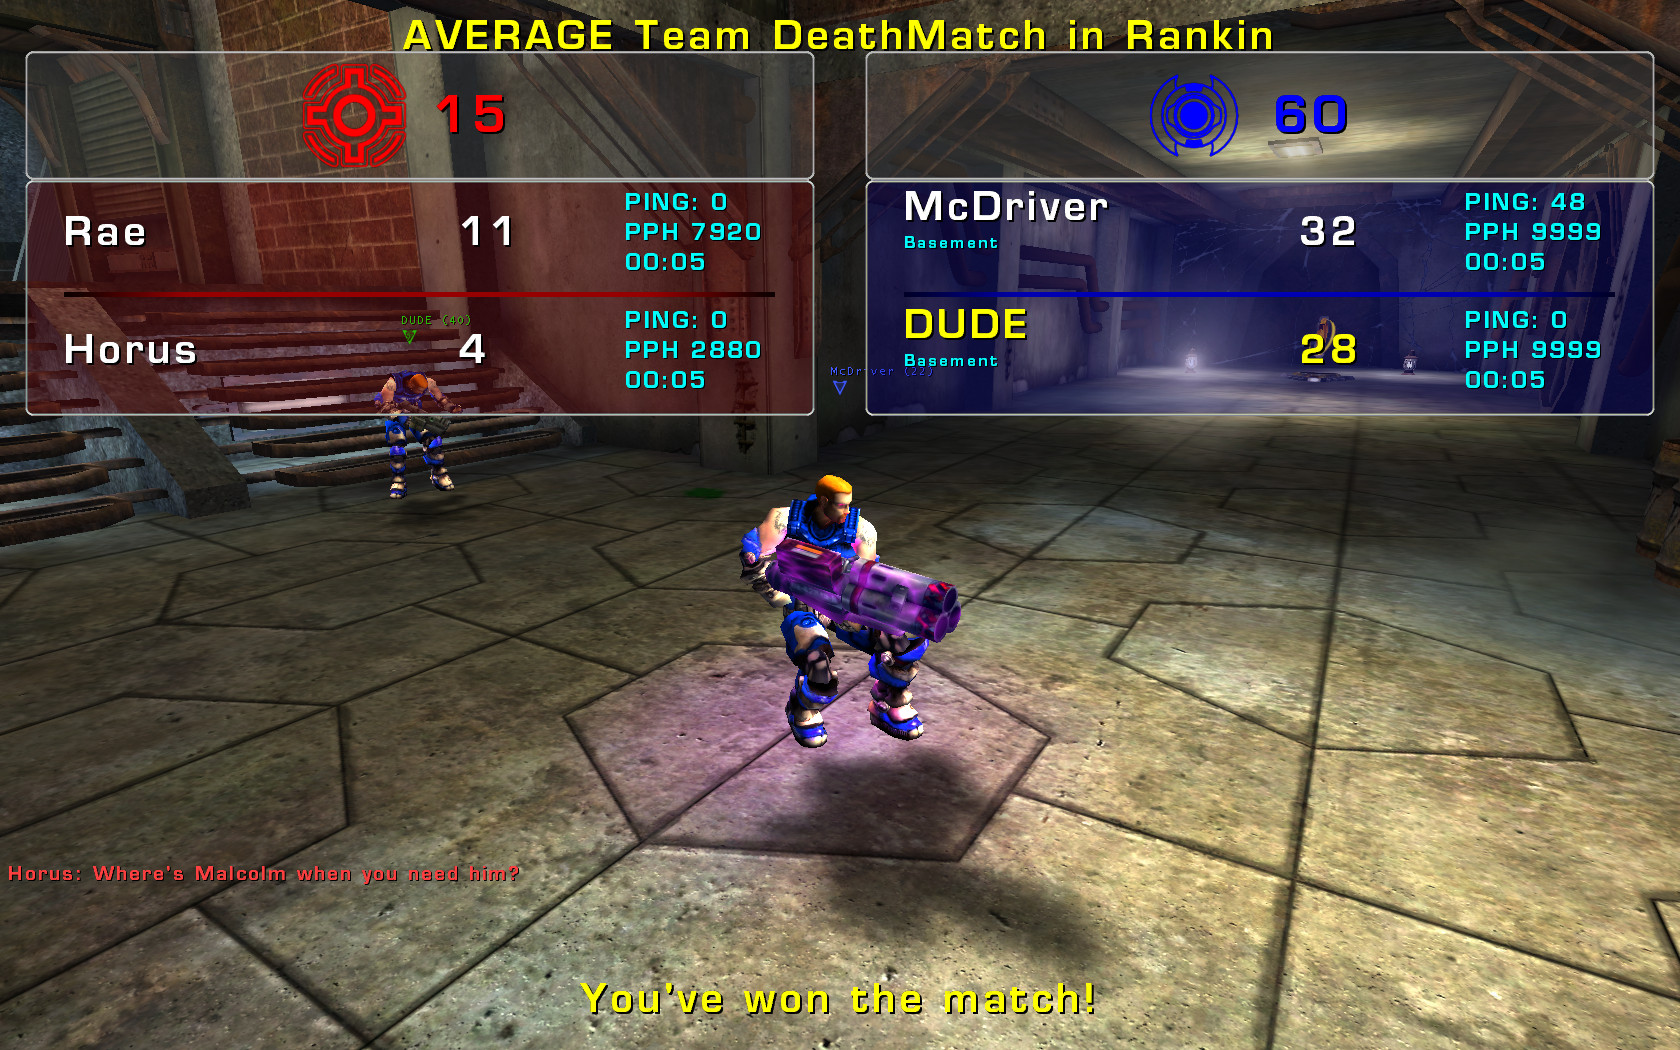 ut2004 – players vs (more) bots (than players)